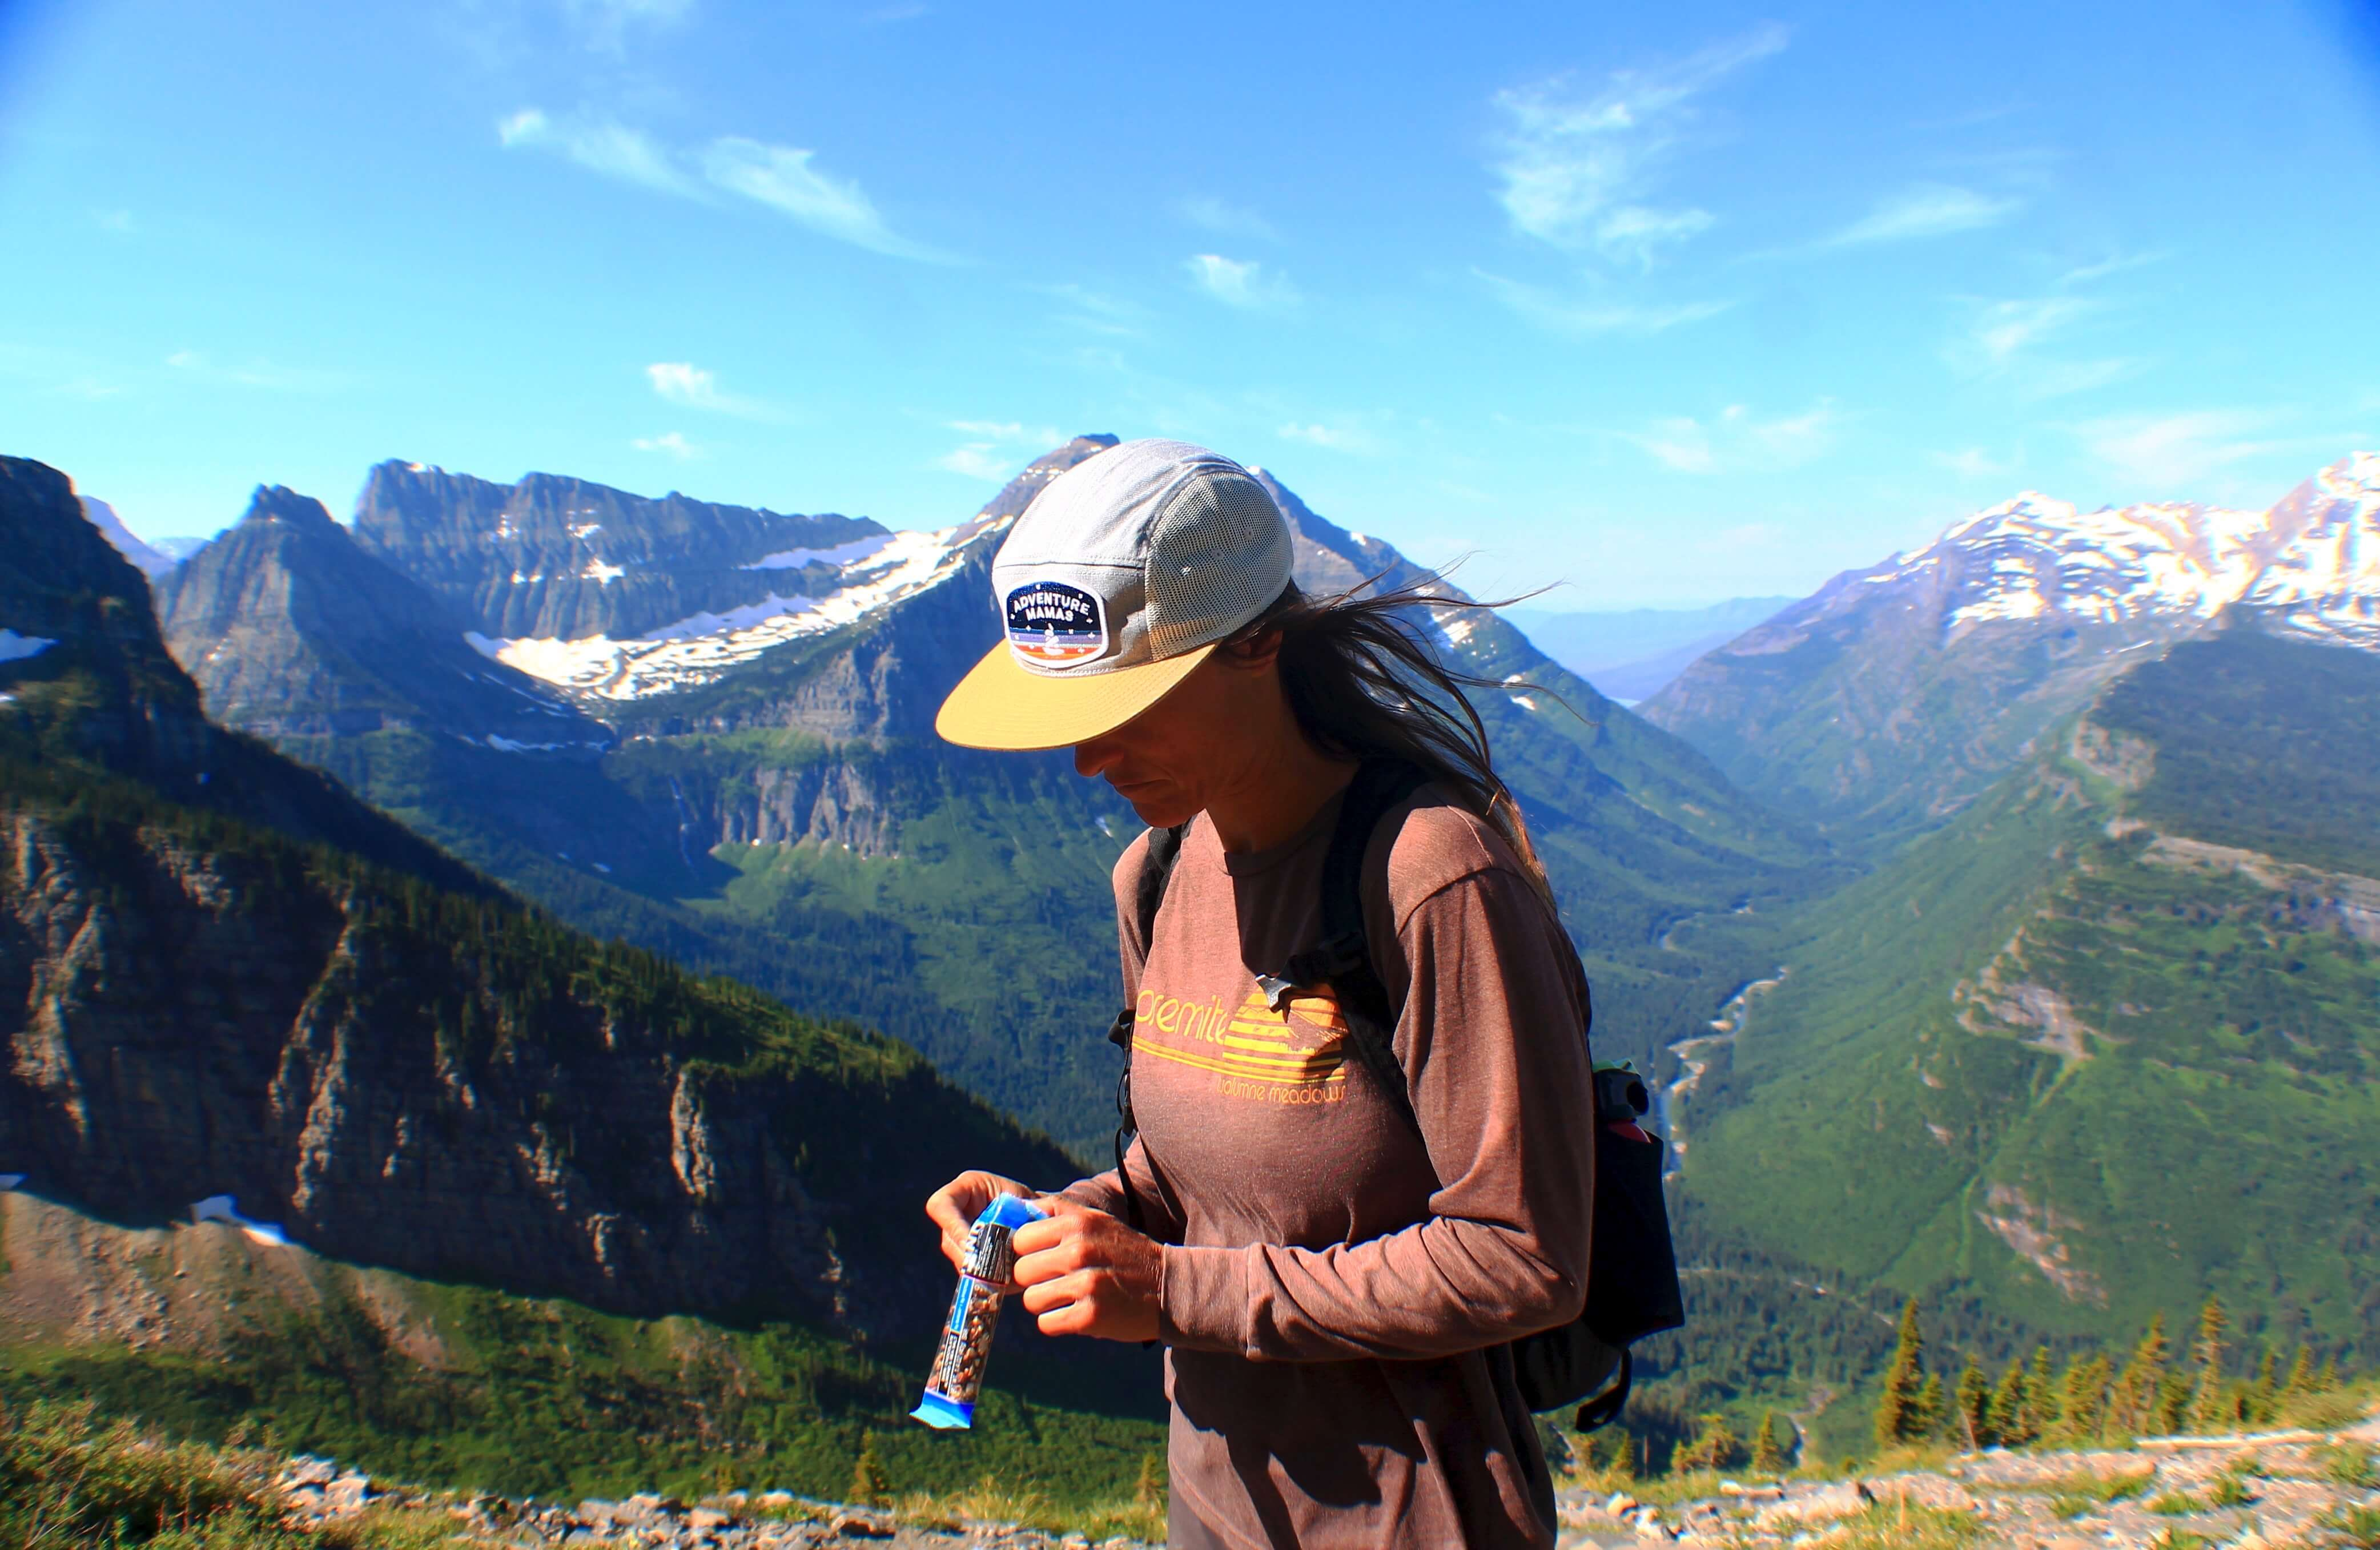 Sun Layers, Backpacking Pack List: The Best + Most Important Gear Essentials